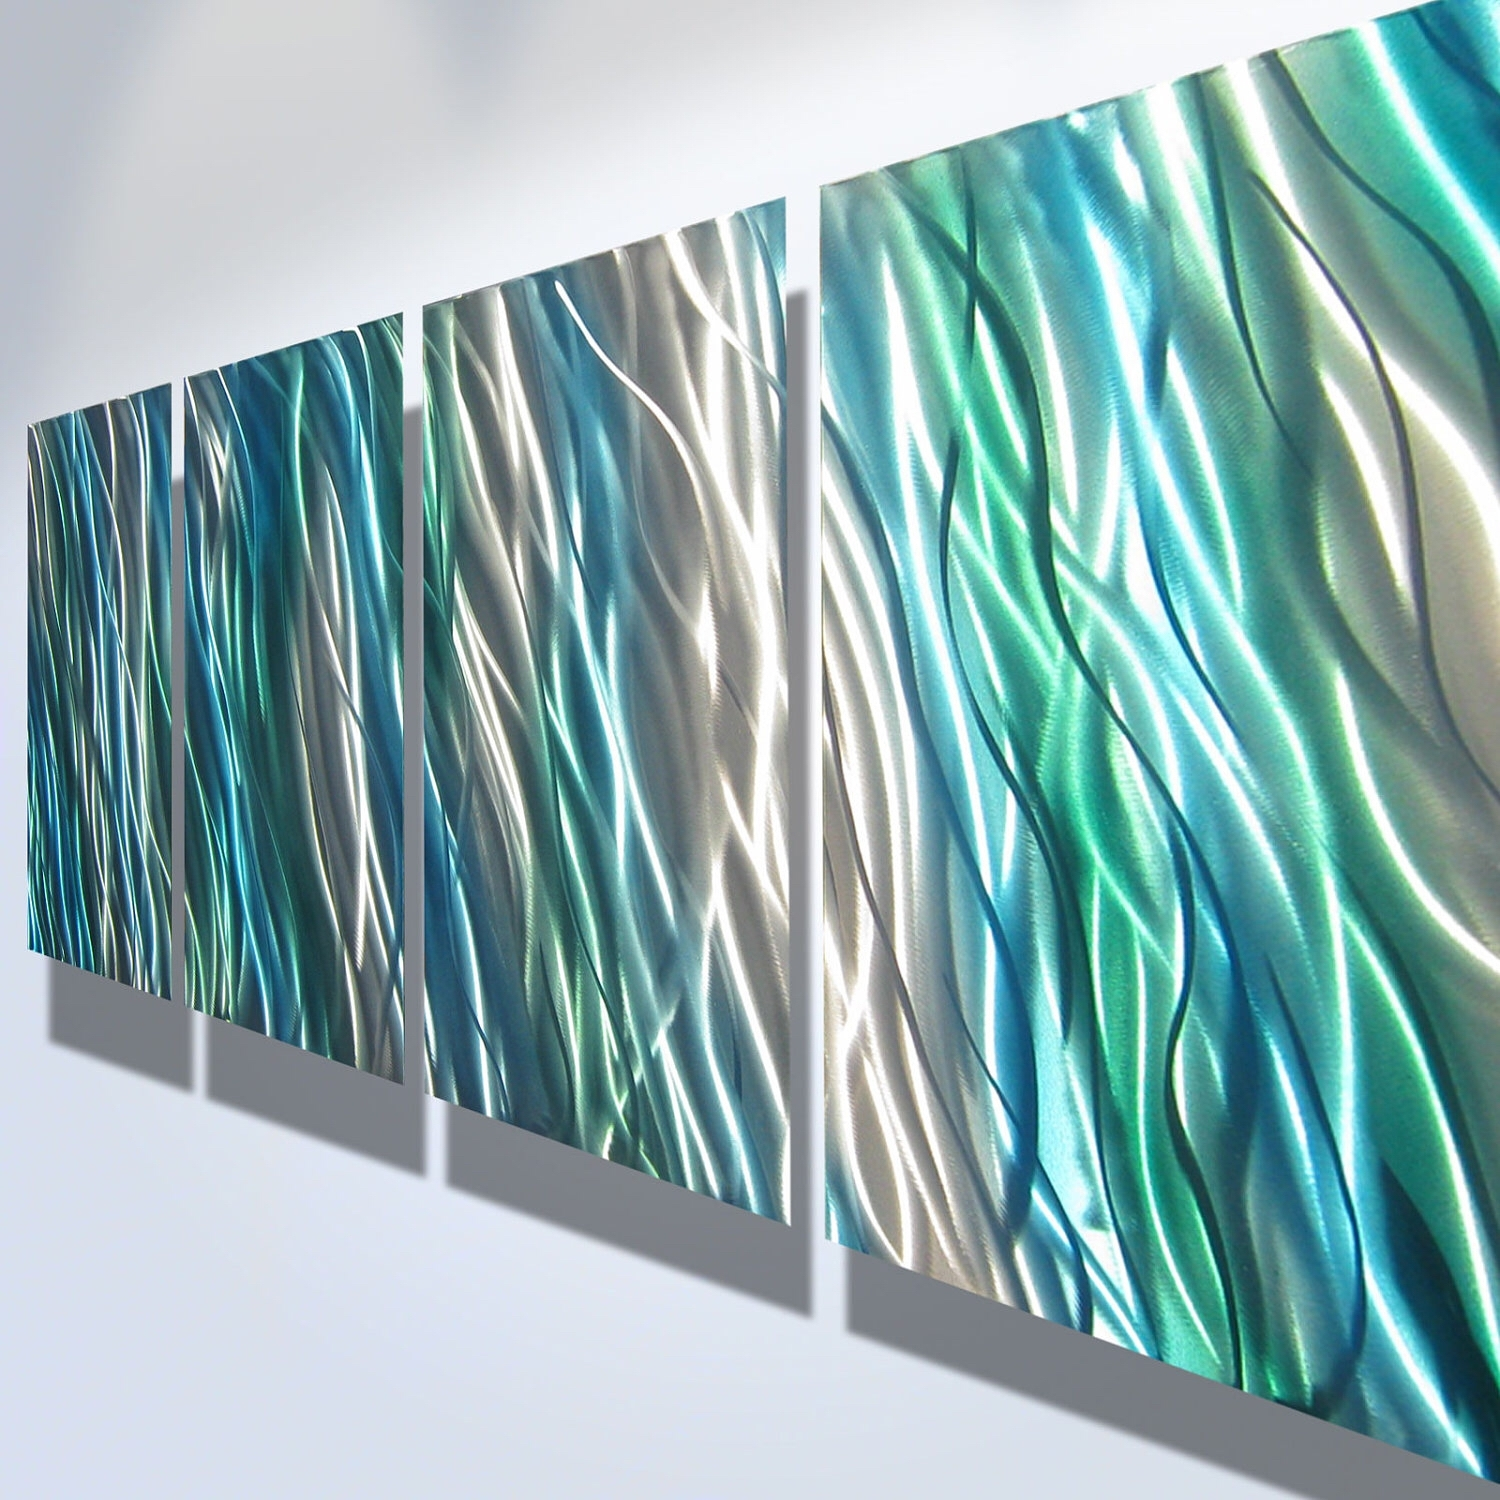 Metal Wall Art Decor Abstract Contemporary Modern Sculpture Intended For Most Popular Diy Modern Abstract Wall Art (View 14 of 20)